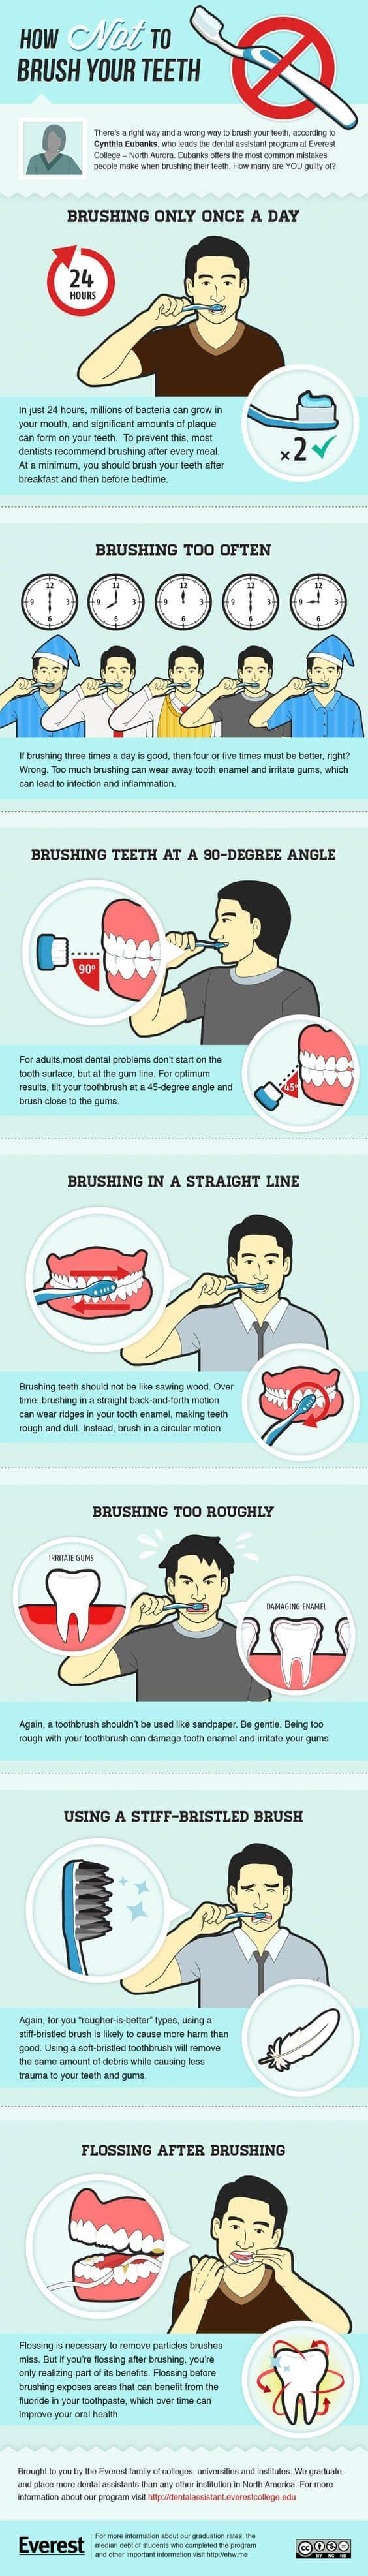 How Often & How Long Should You Brush Your Teeth